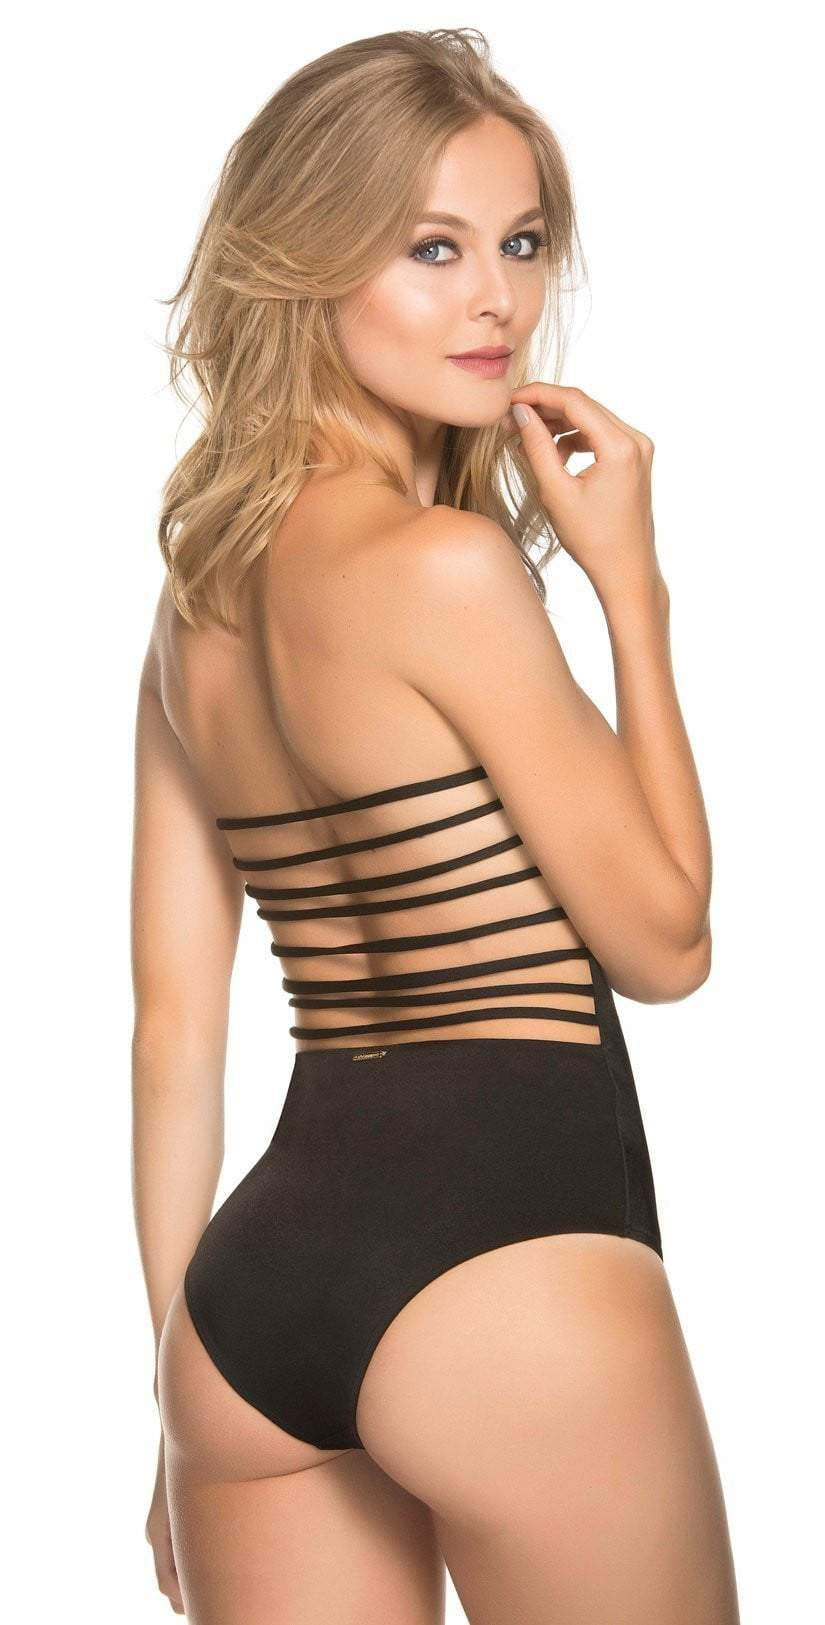 Dulzamara Sunshine Bandeau One Piece BACK VIEW